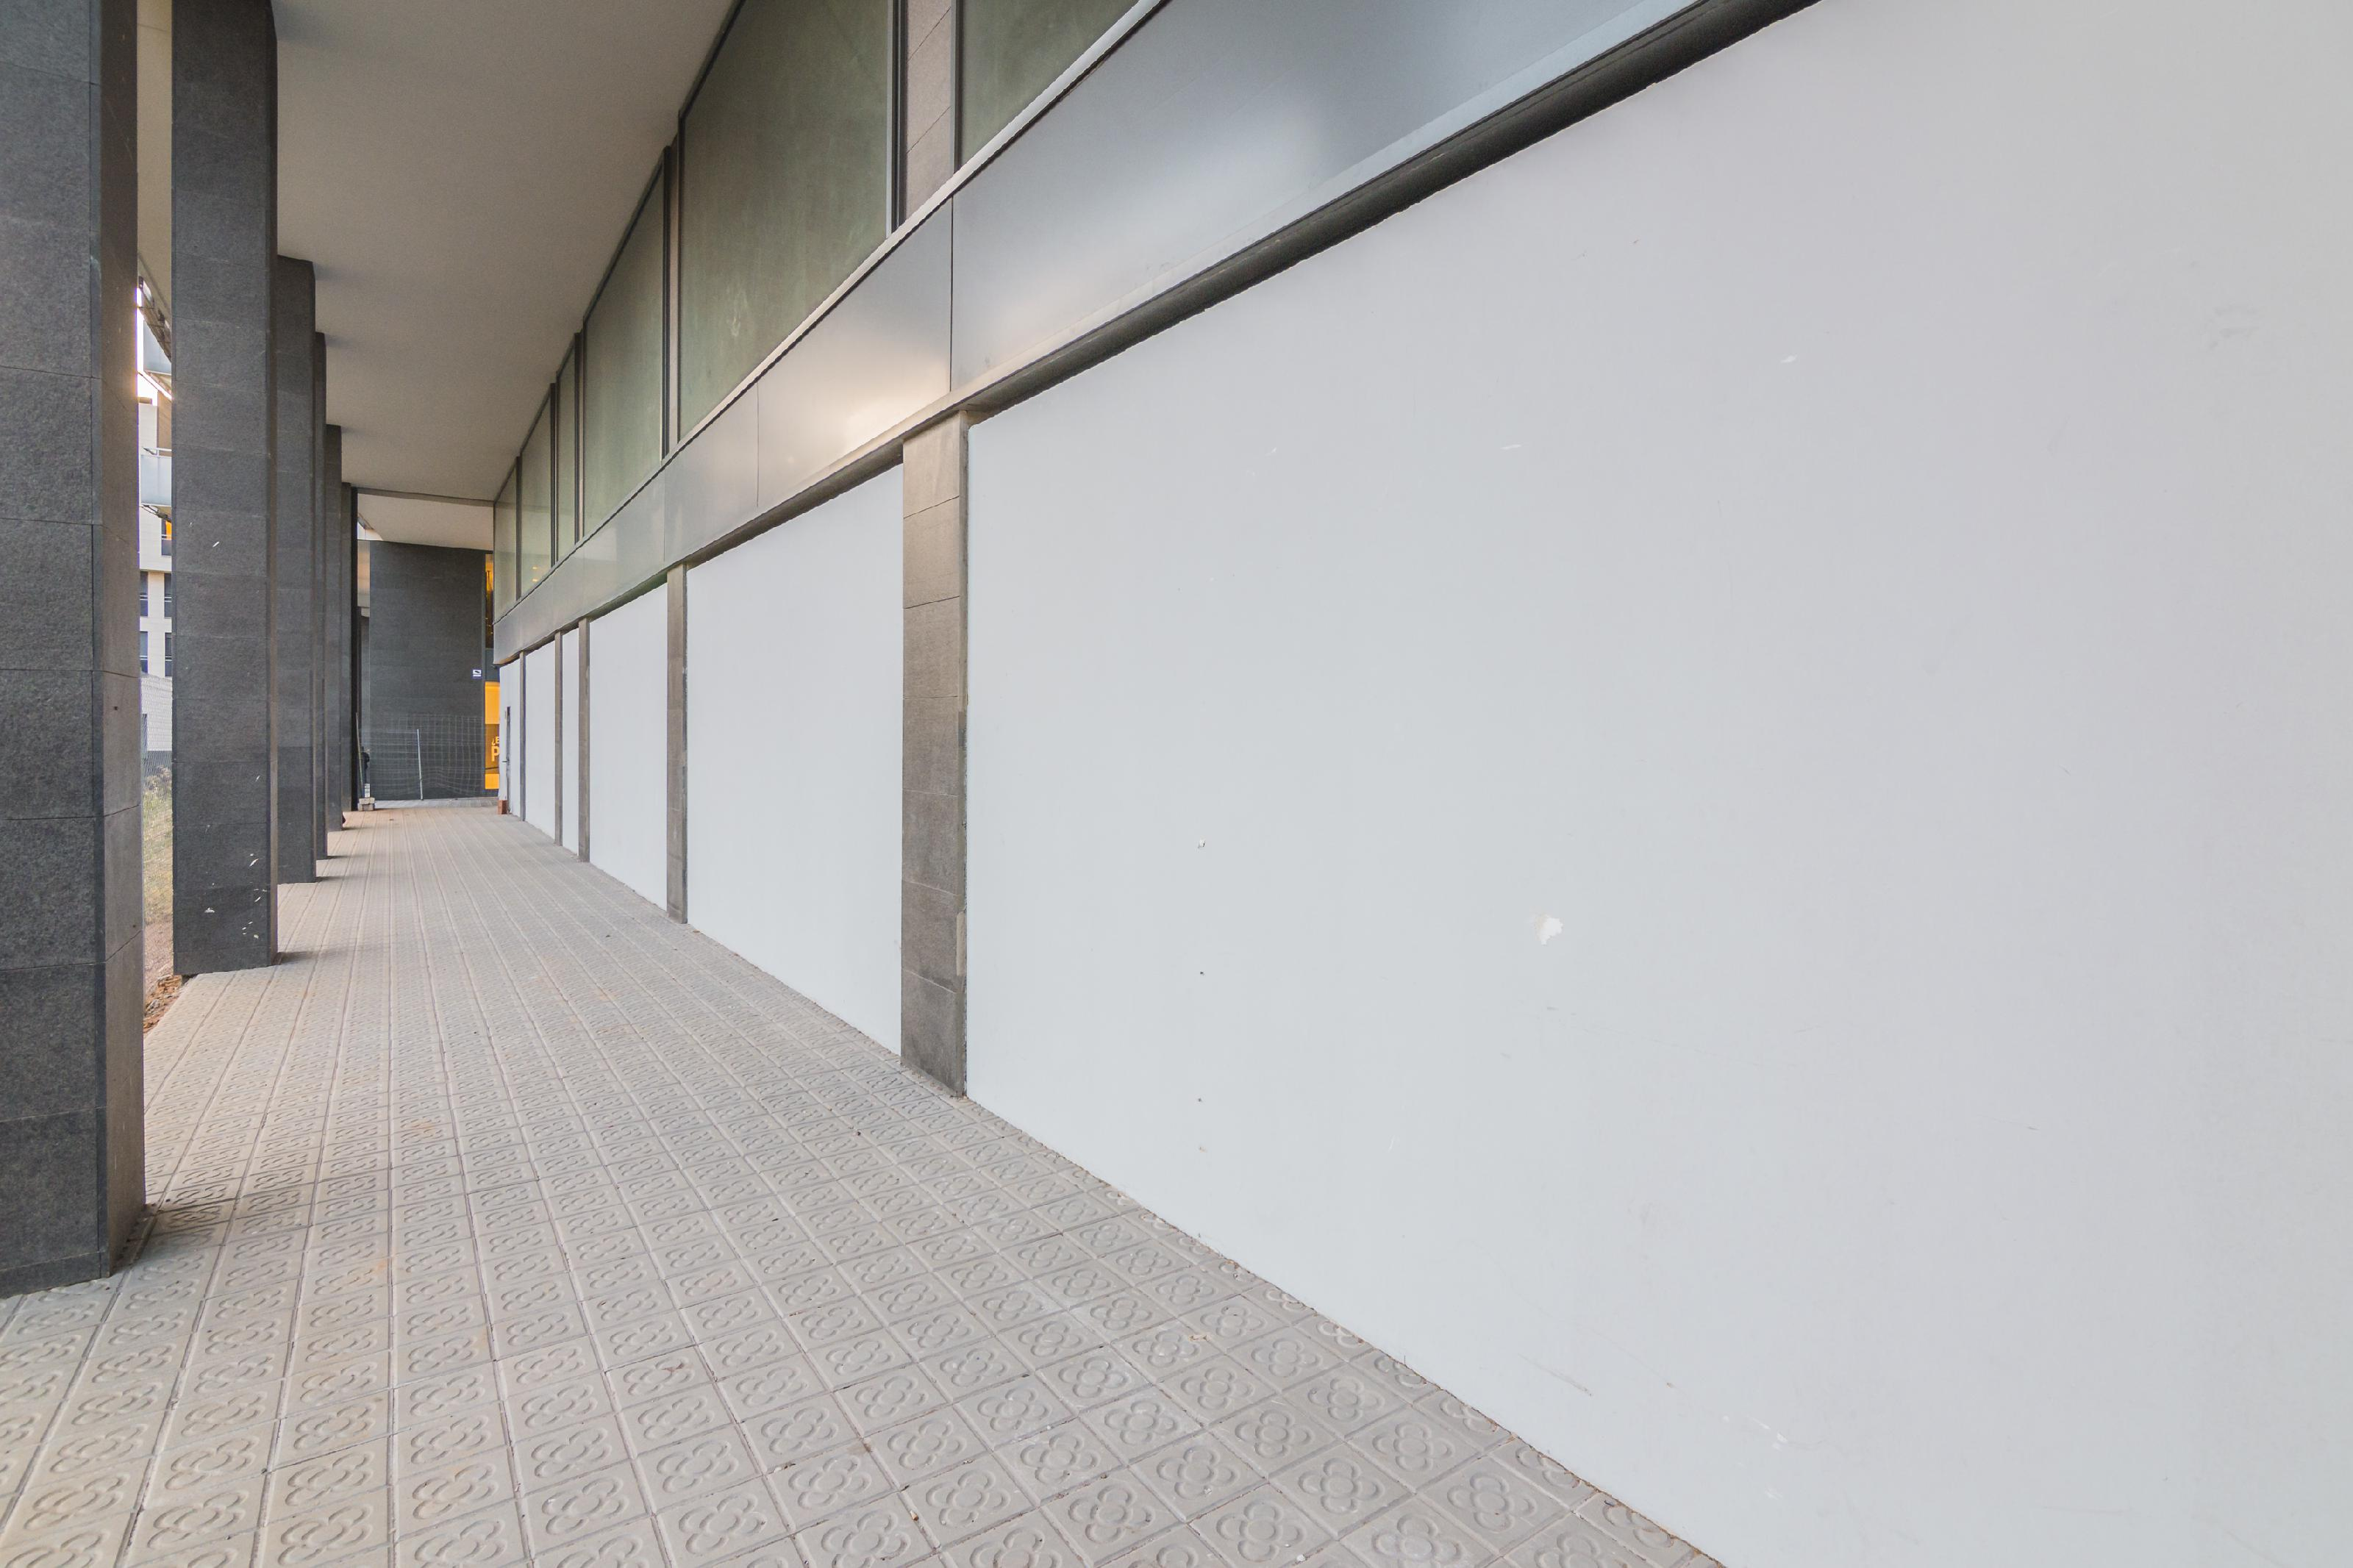 208066 Commercial Premises for sale in Les Corts, Les Corts 4